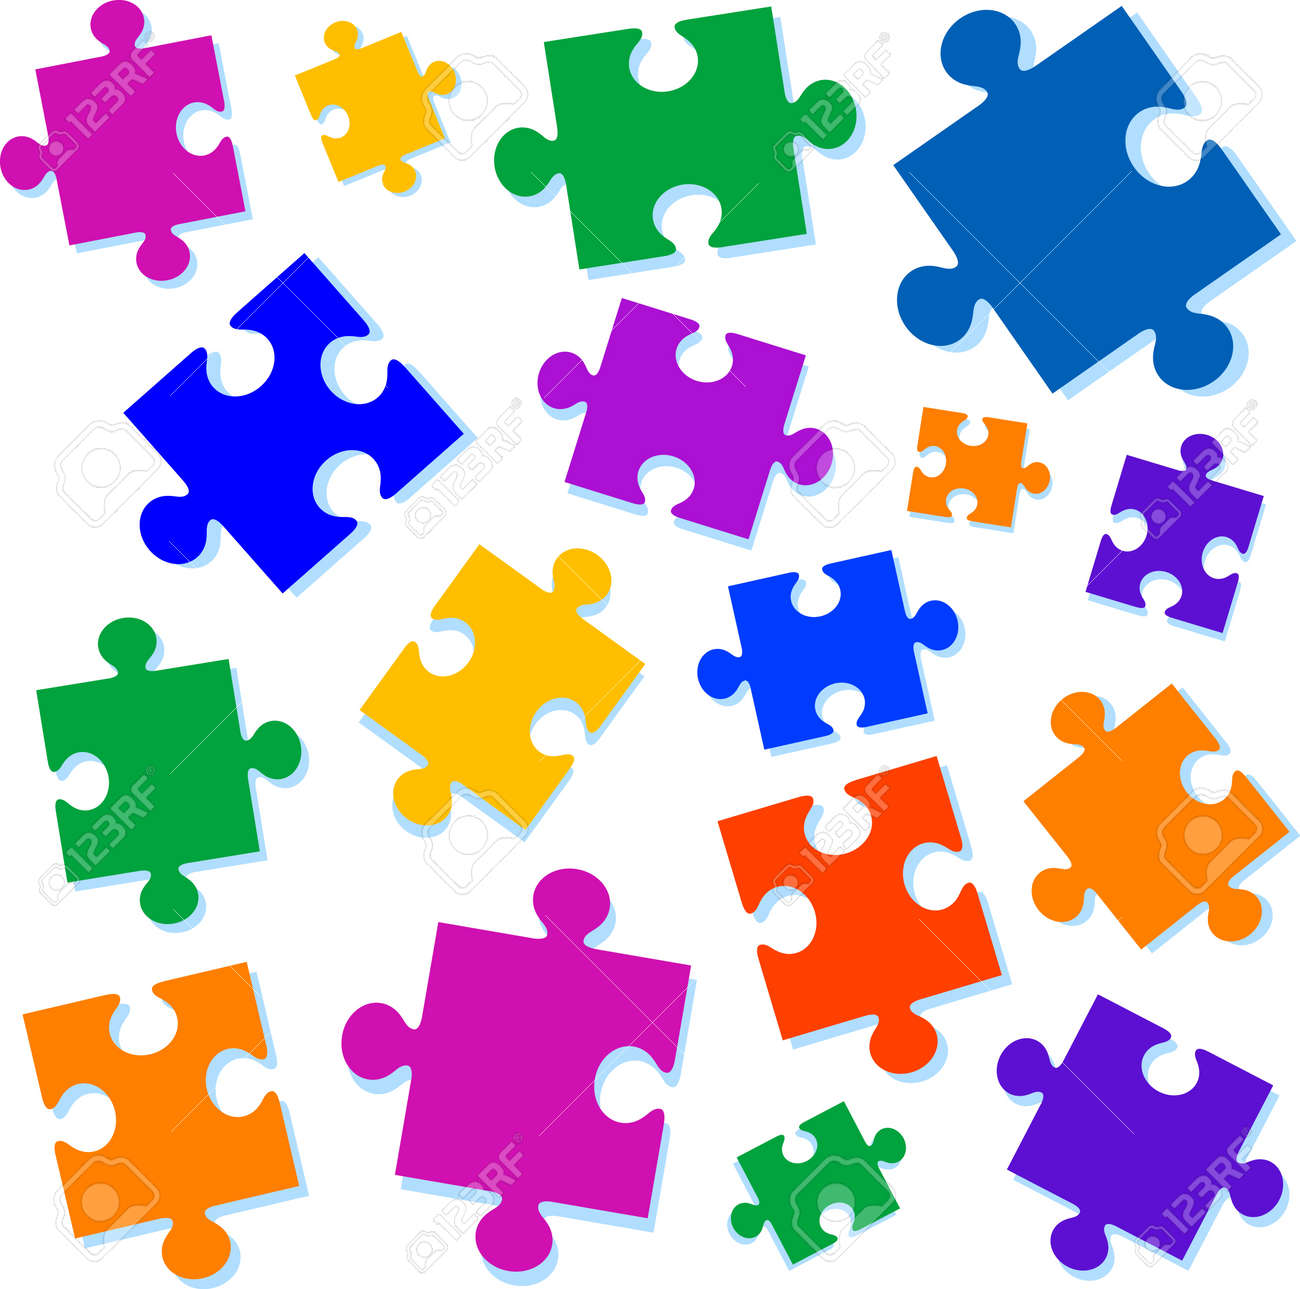 Jigsaw pieces vector illustration. All elements are separate and fully editable Stock Vector - 4022650